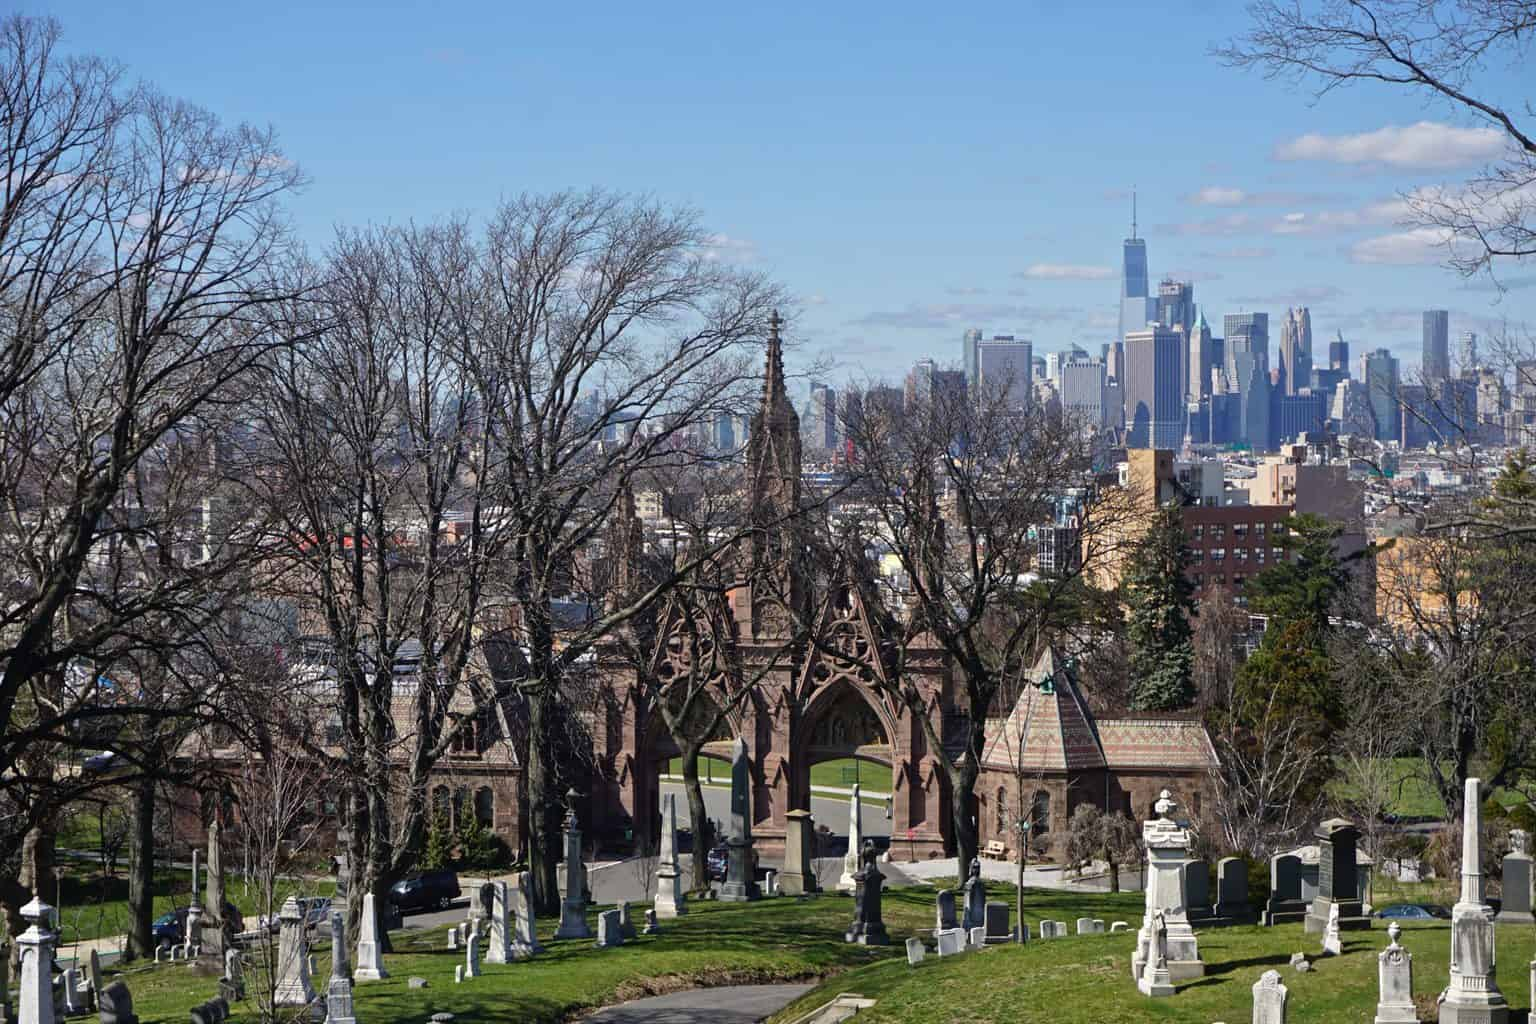 A stunning view of Manhattan from Green-wood Cemetery in Brooklyn.